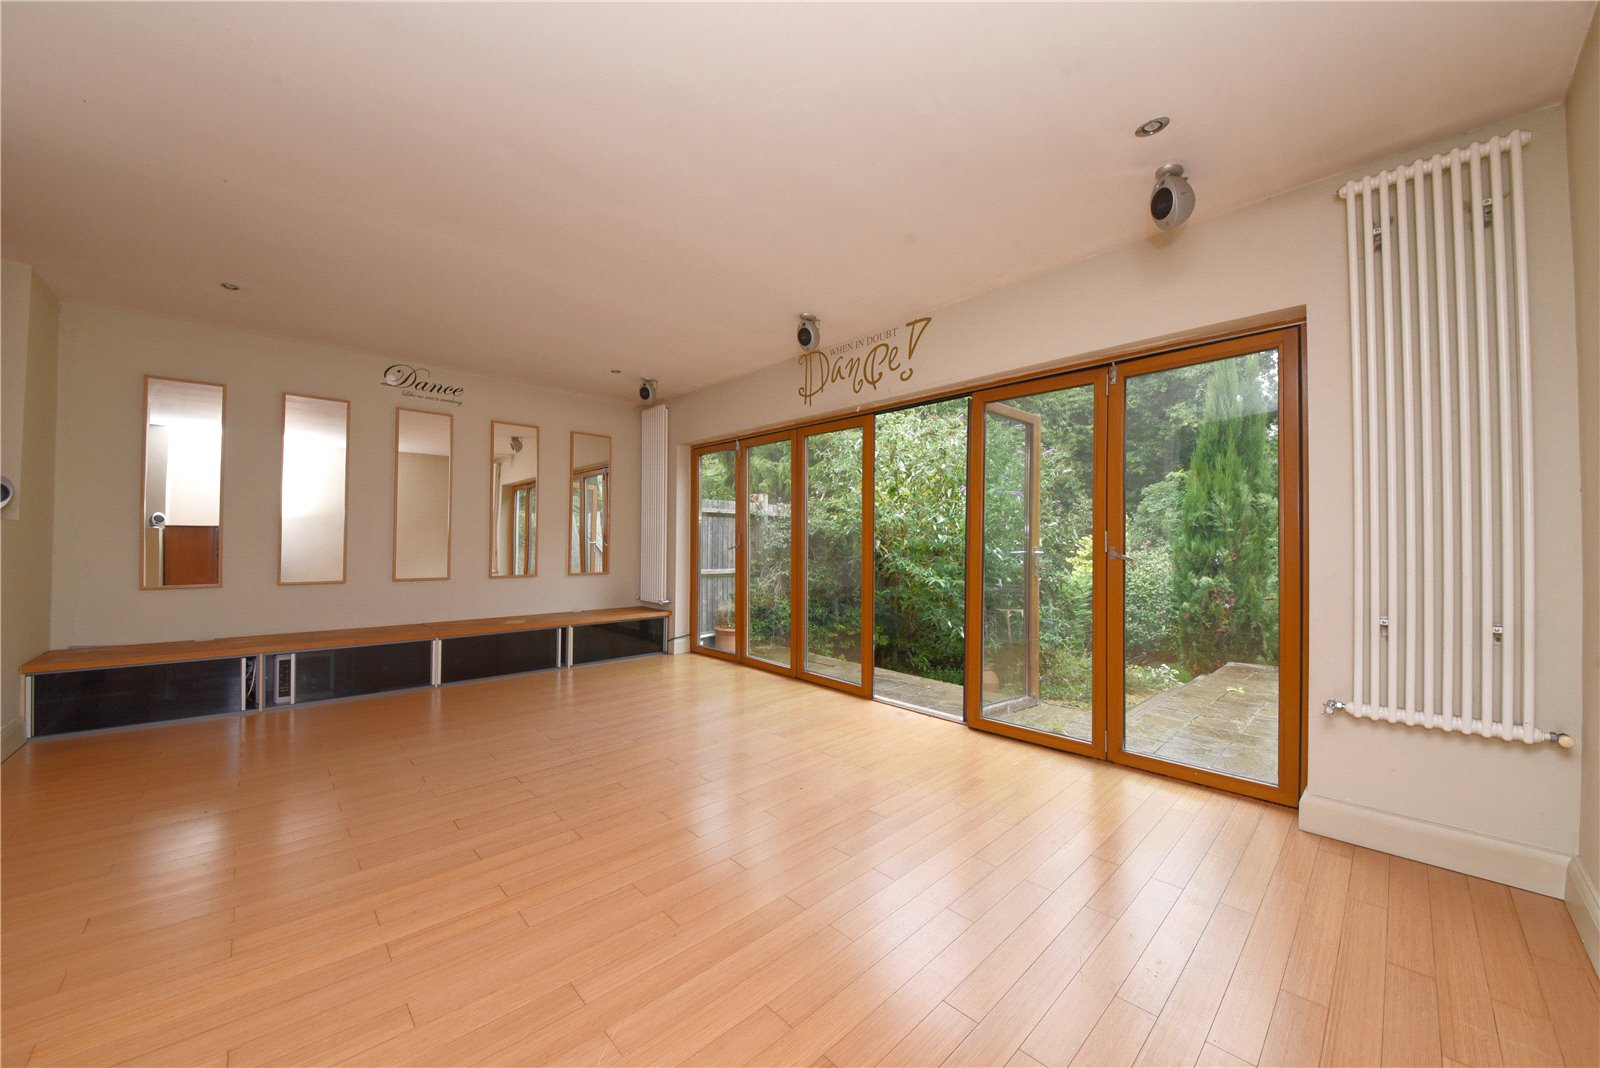 4 bed house to rent in Longland Drive, Totteridge  - Property Image 4